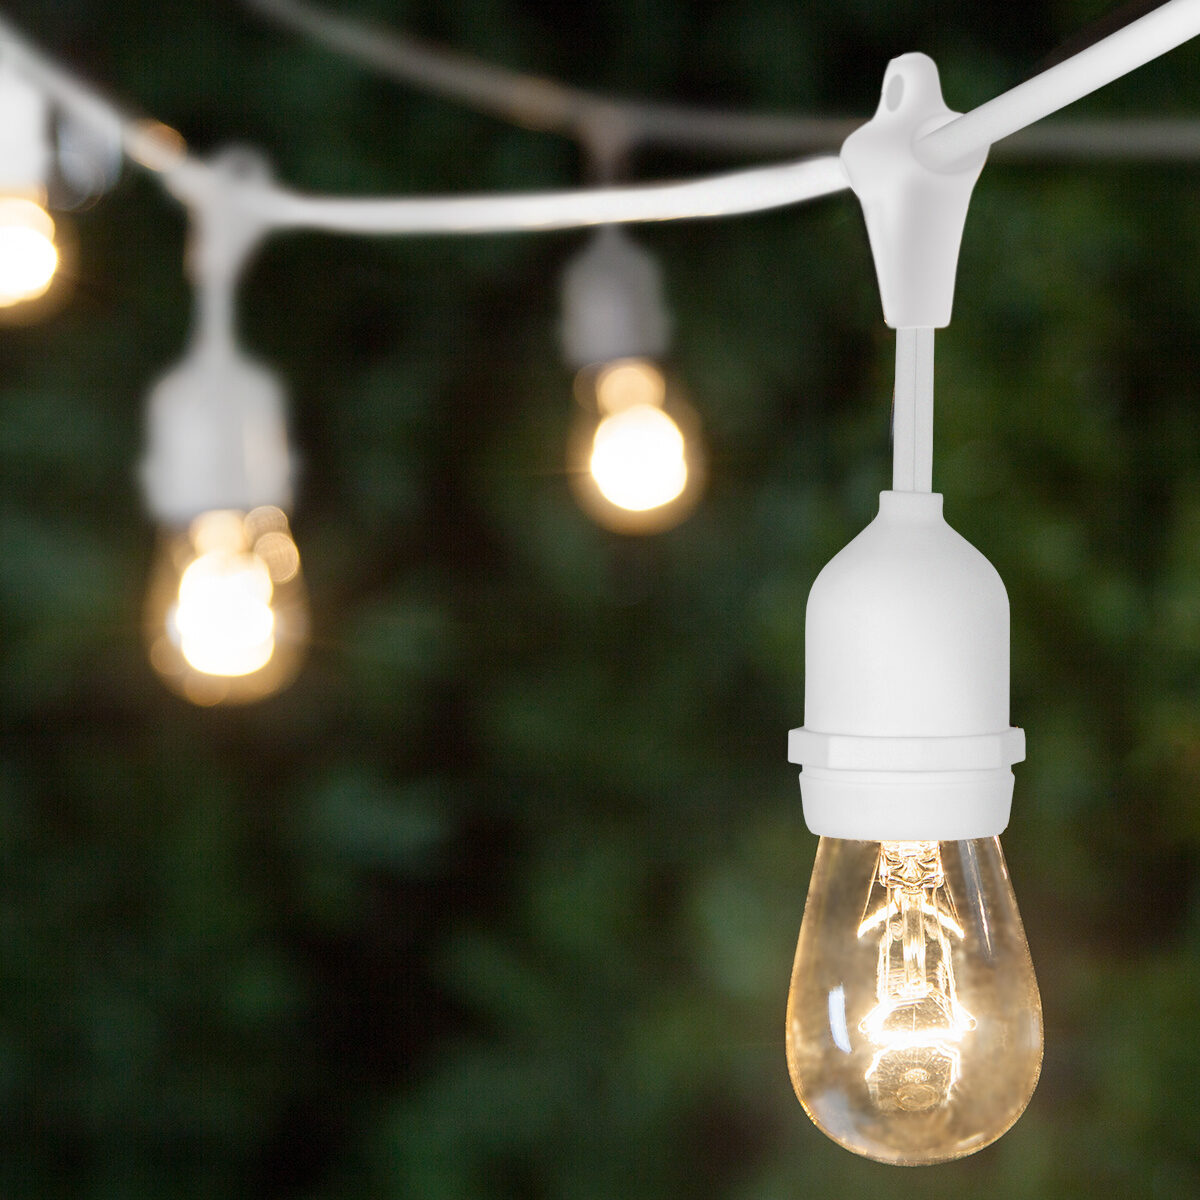 Commercial Patio String Lights, Clear S14 Bulbs, Suspended, White Wire